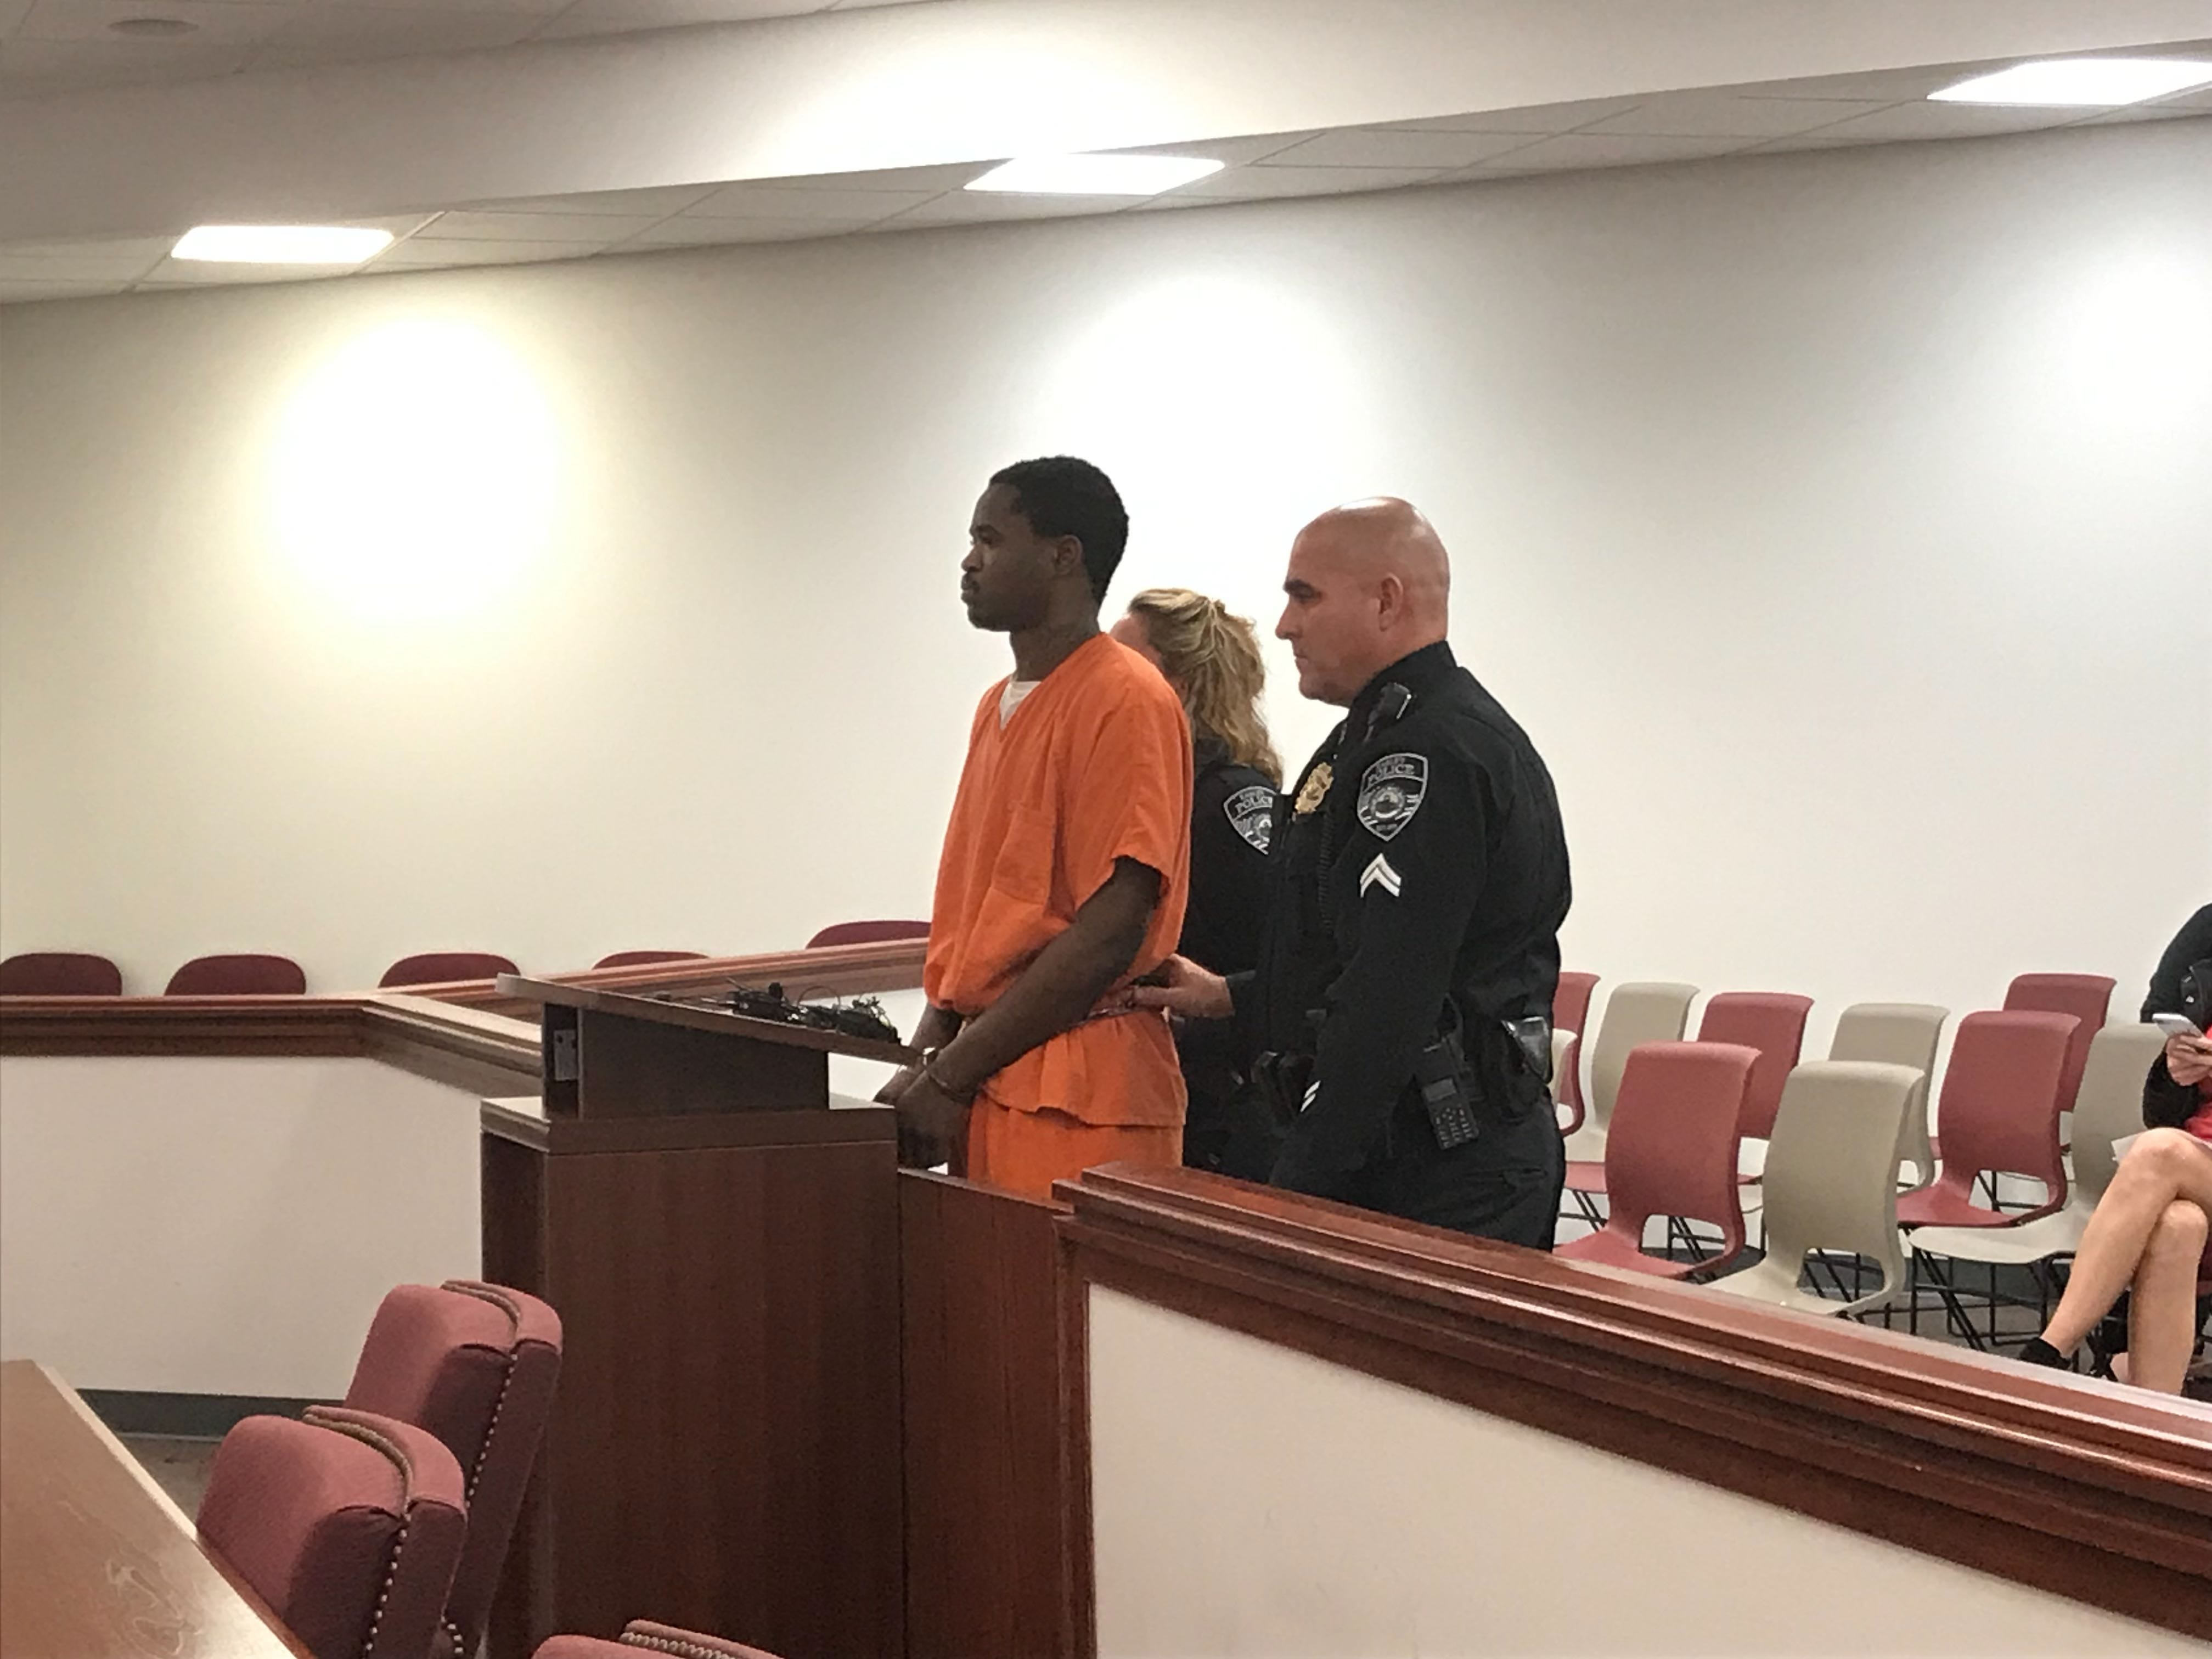 Tychristian Ladson was arrested Tuesday in connection to the shooting death of Stacey Regina Branham. He appeared in court Wednesday, Feb. 6, 2019. He was denied bond.